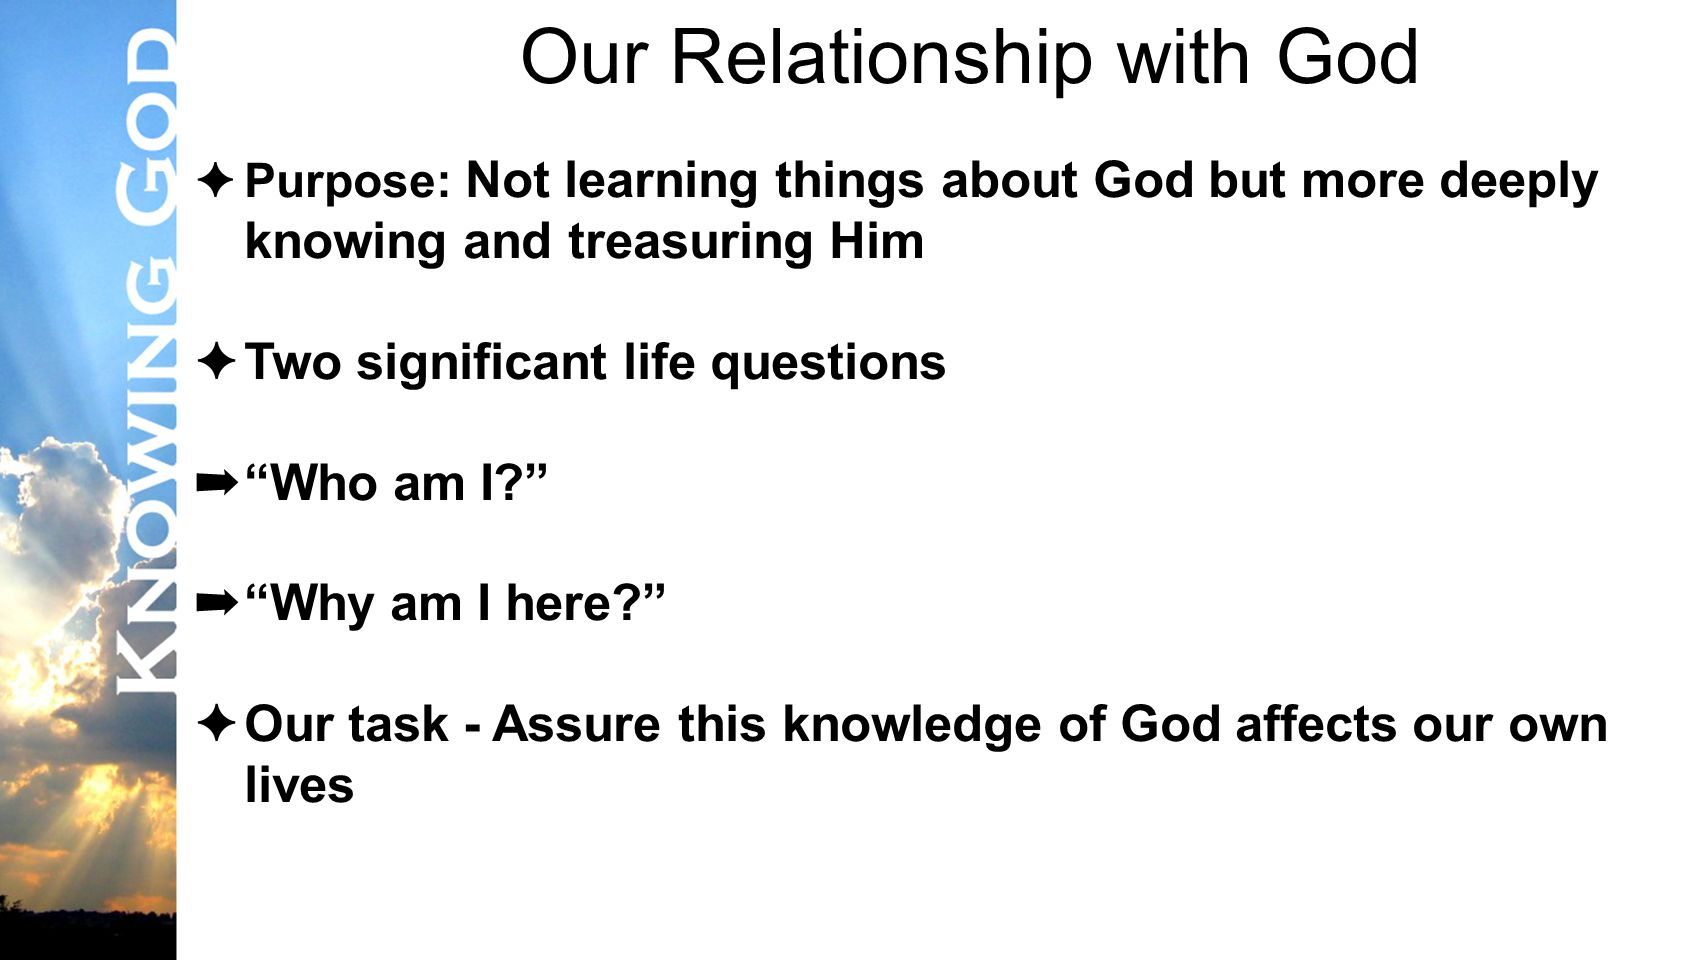 Lesson #3 Our Relationship with God ✦ Purpose: Not learning things about God but more deeply knowing and treasuring Him ✦ Two significant life questions ➡ Who am I ➡ Why am I here ✦ Our task - Assure this knowledge of God affects our own lives